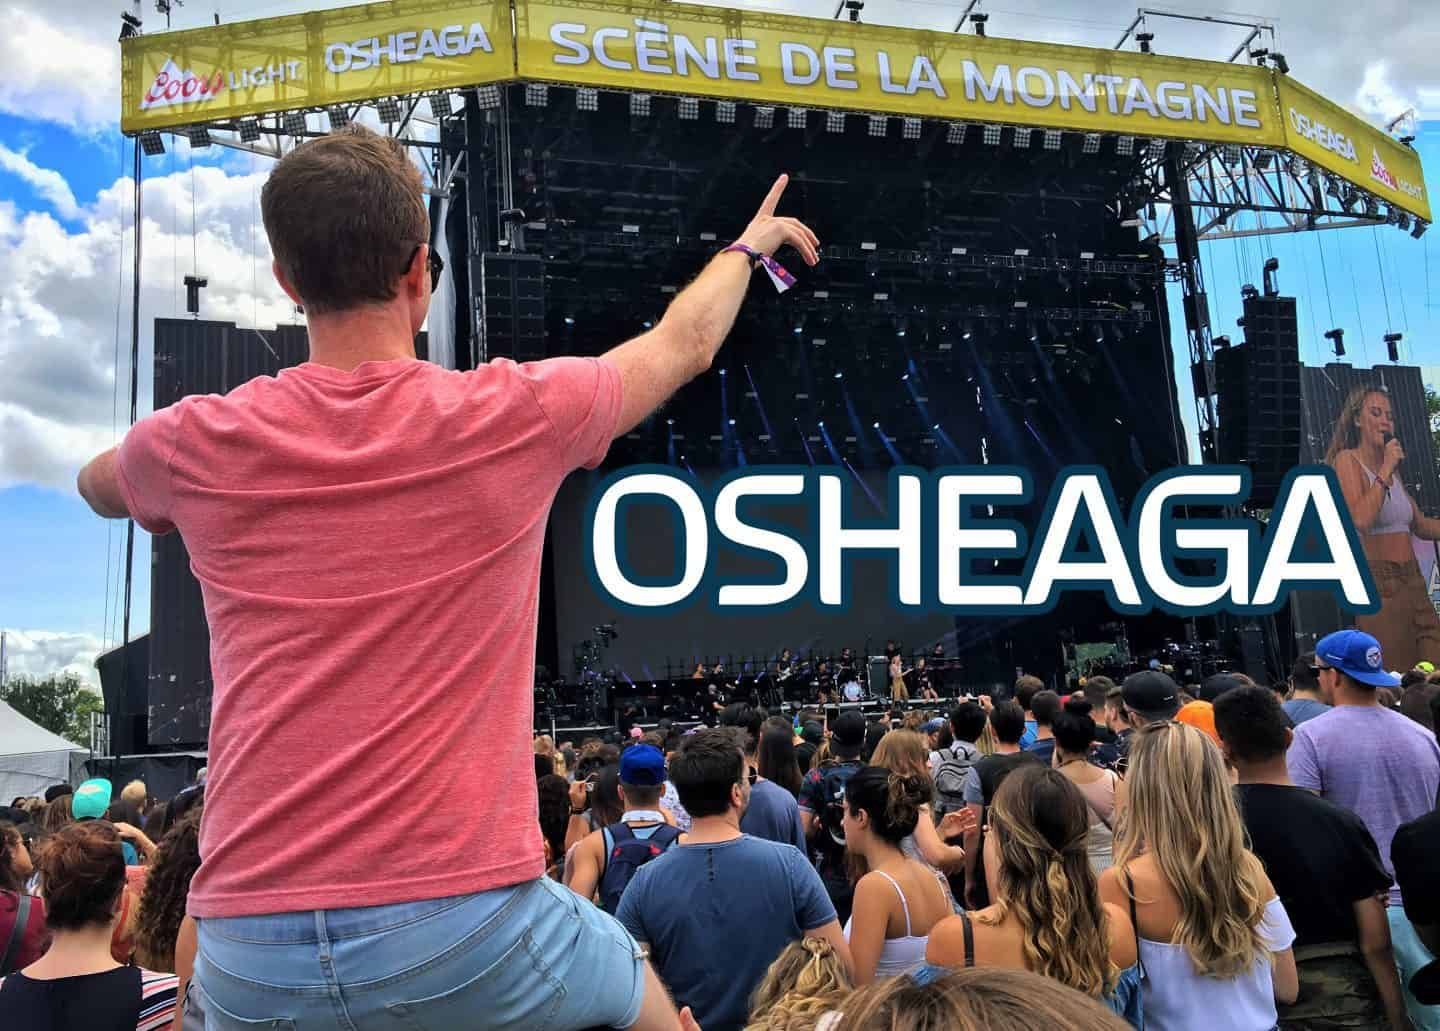 Osheaga 2018 Lineup Announced – Dua Lipa, Odesza and more!